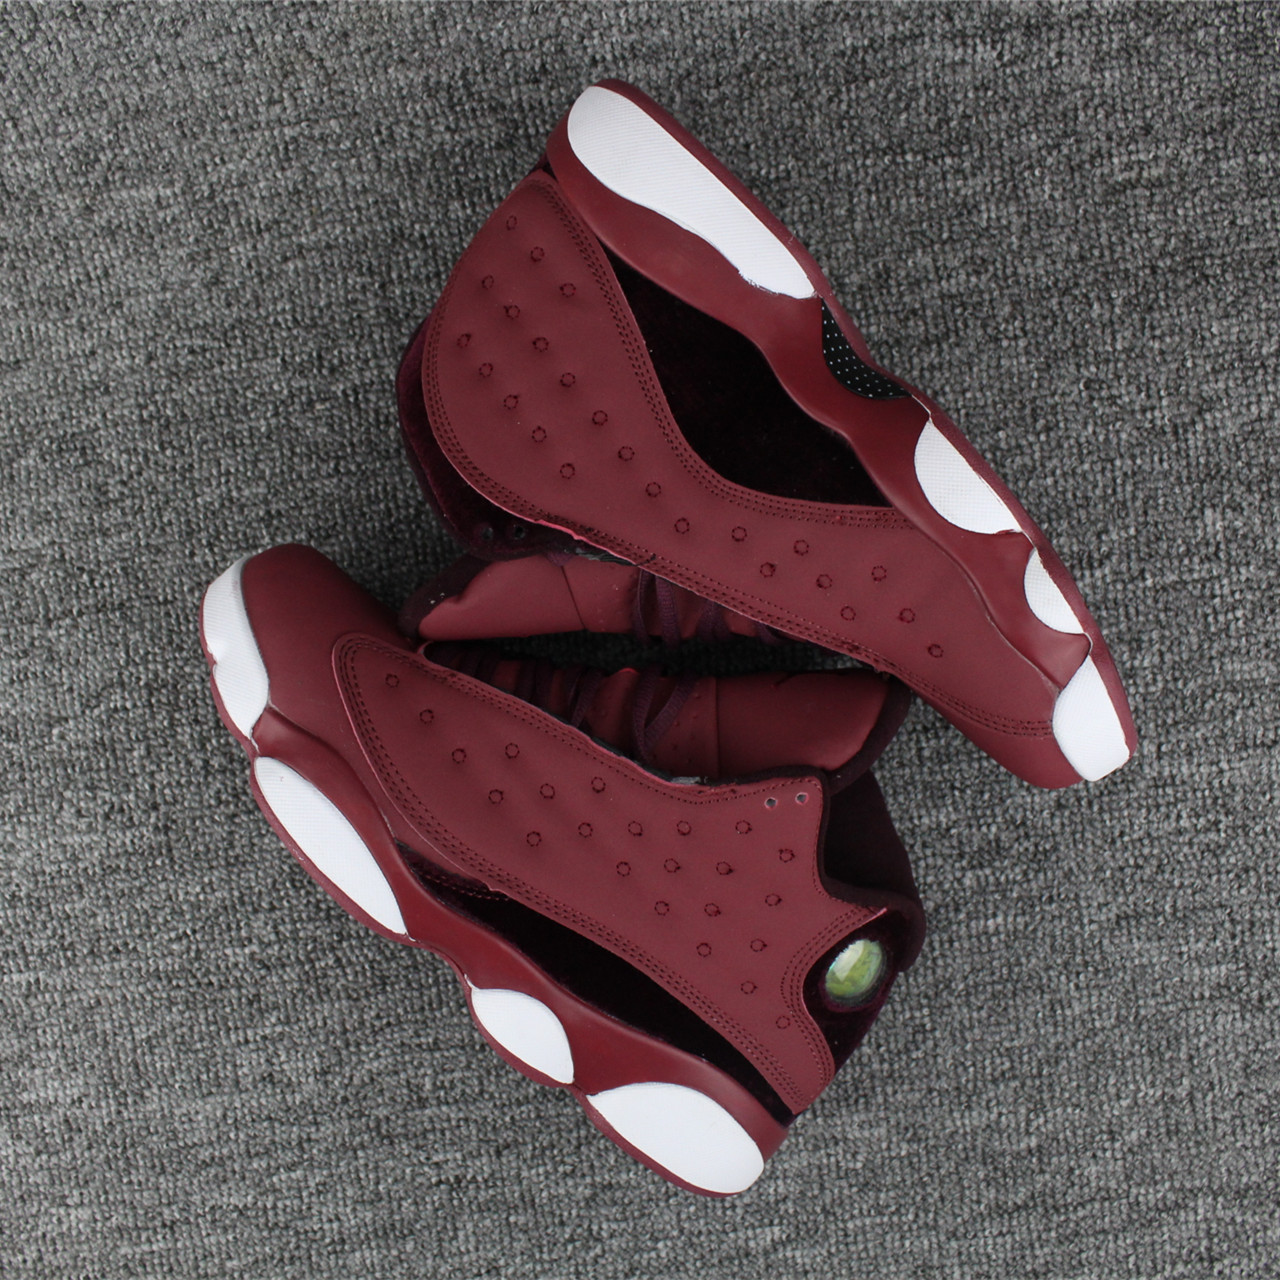 2018 Jordans 13 Wine Red Shoes